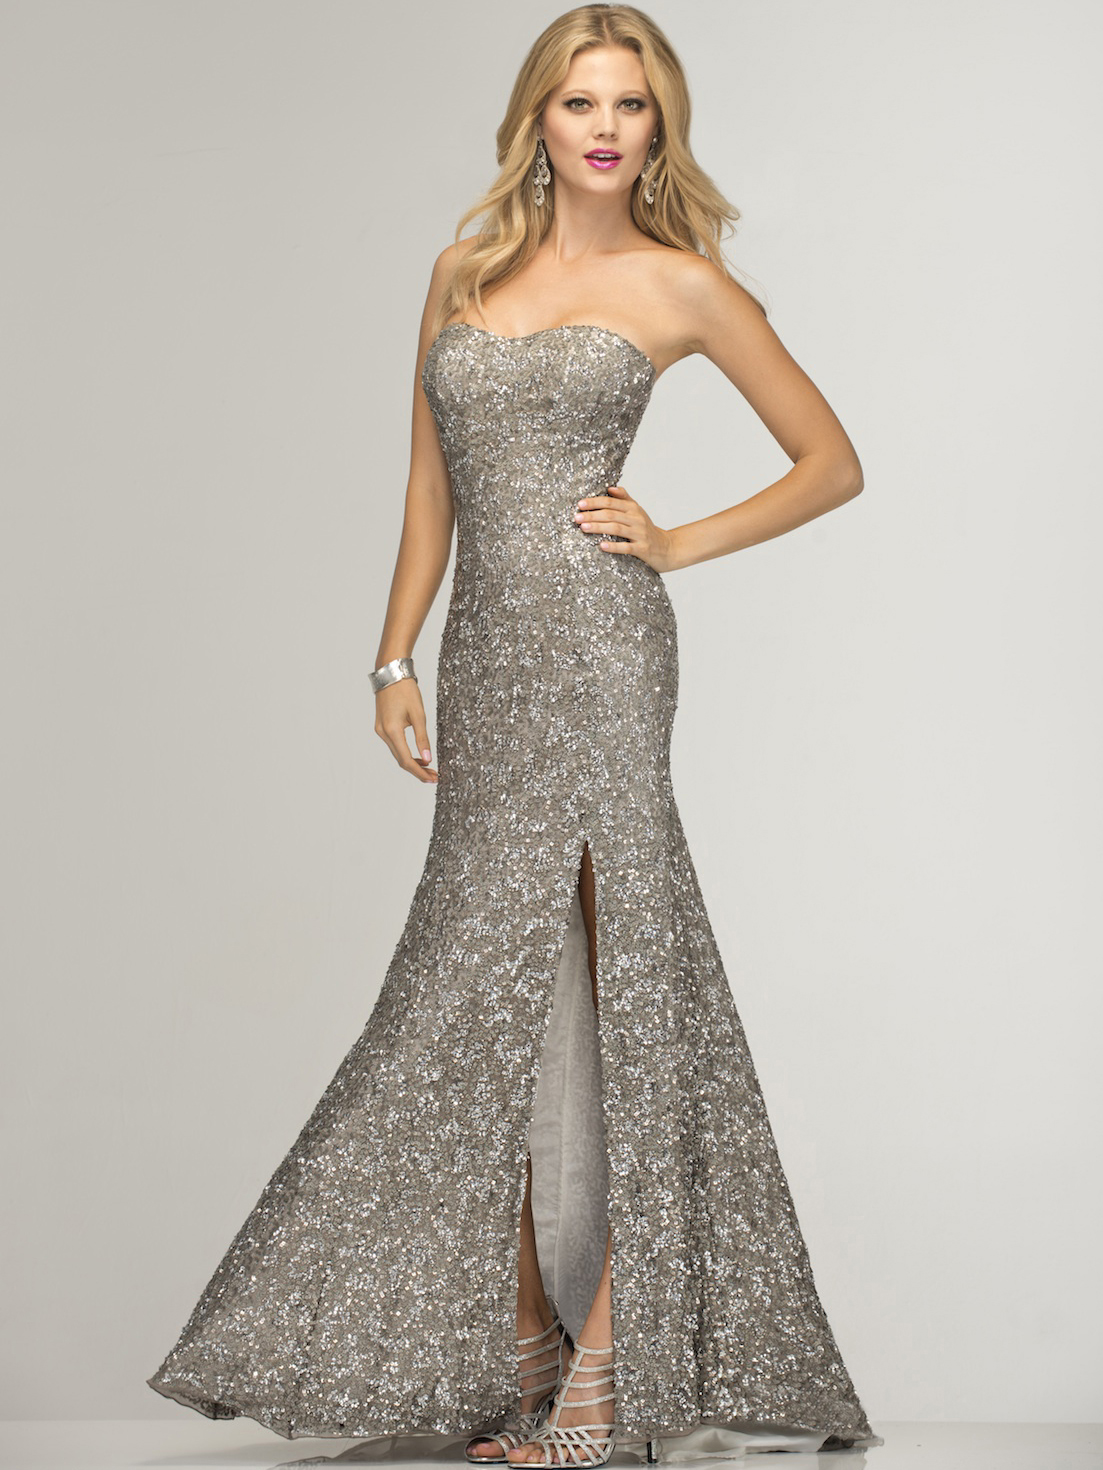 Lead and Silver Prom Gown by Scala | Sung Boutique L.A.